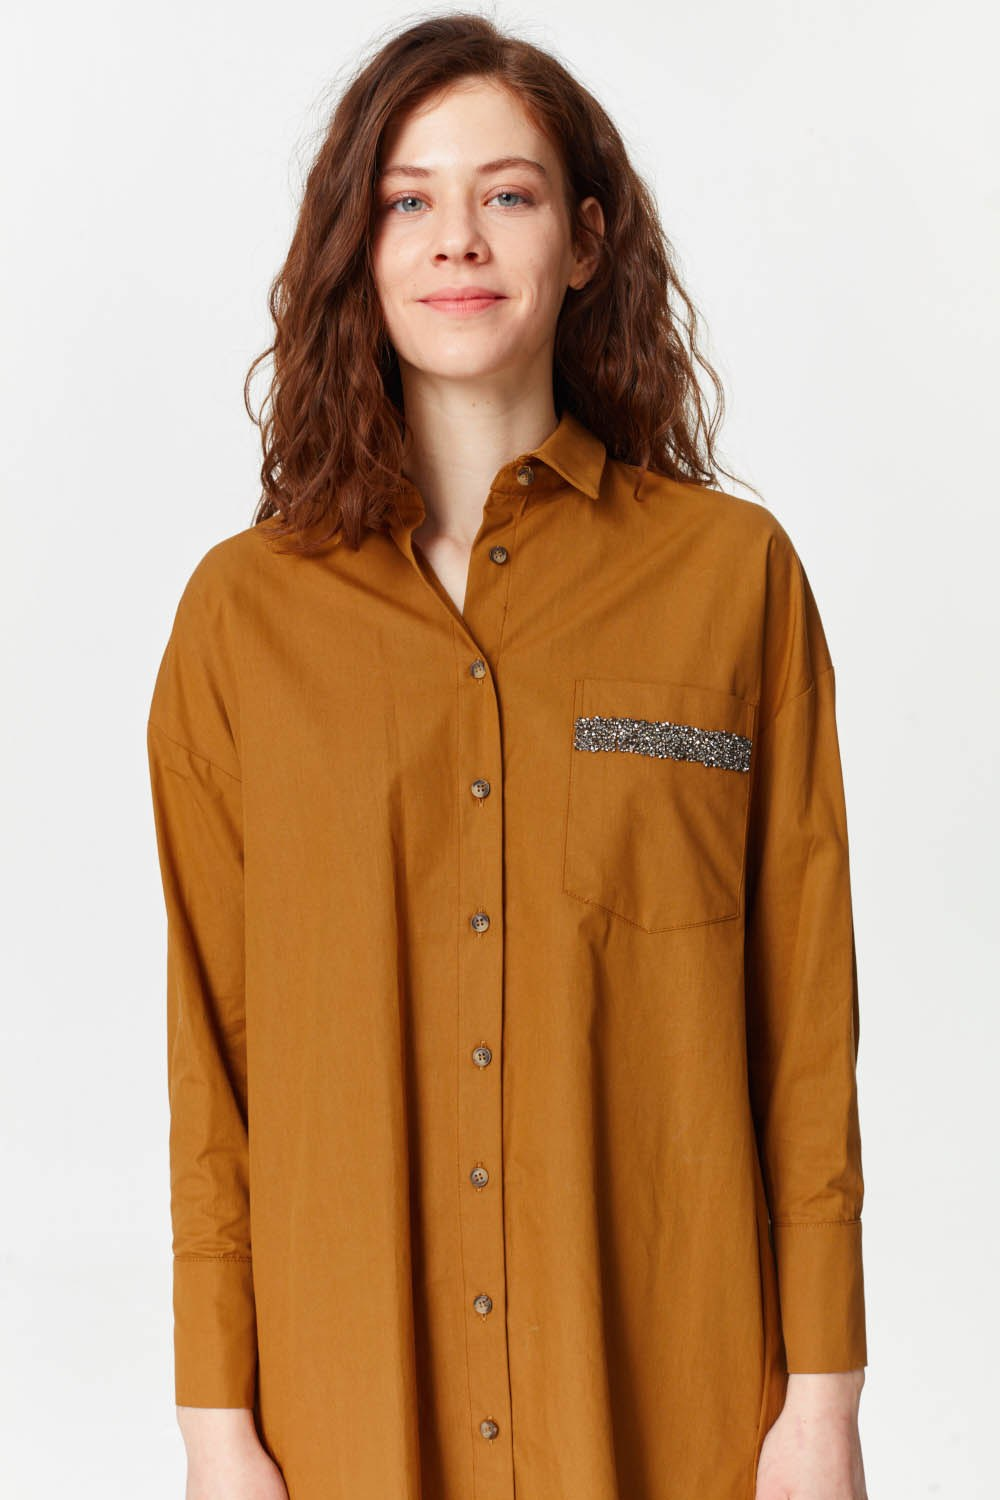 MIZALLE Tunic With Pocket Details (Mustard) (1)